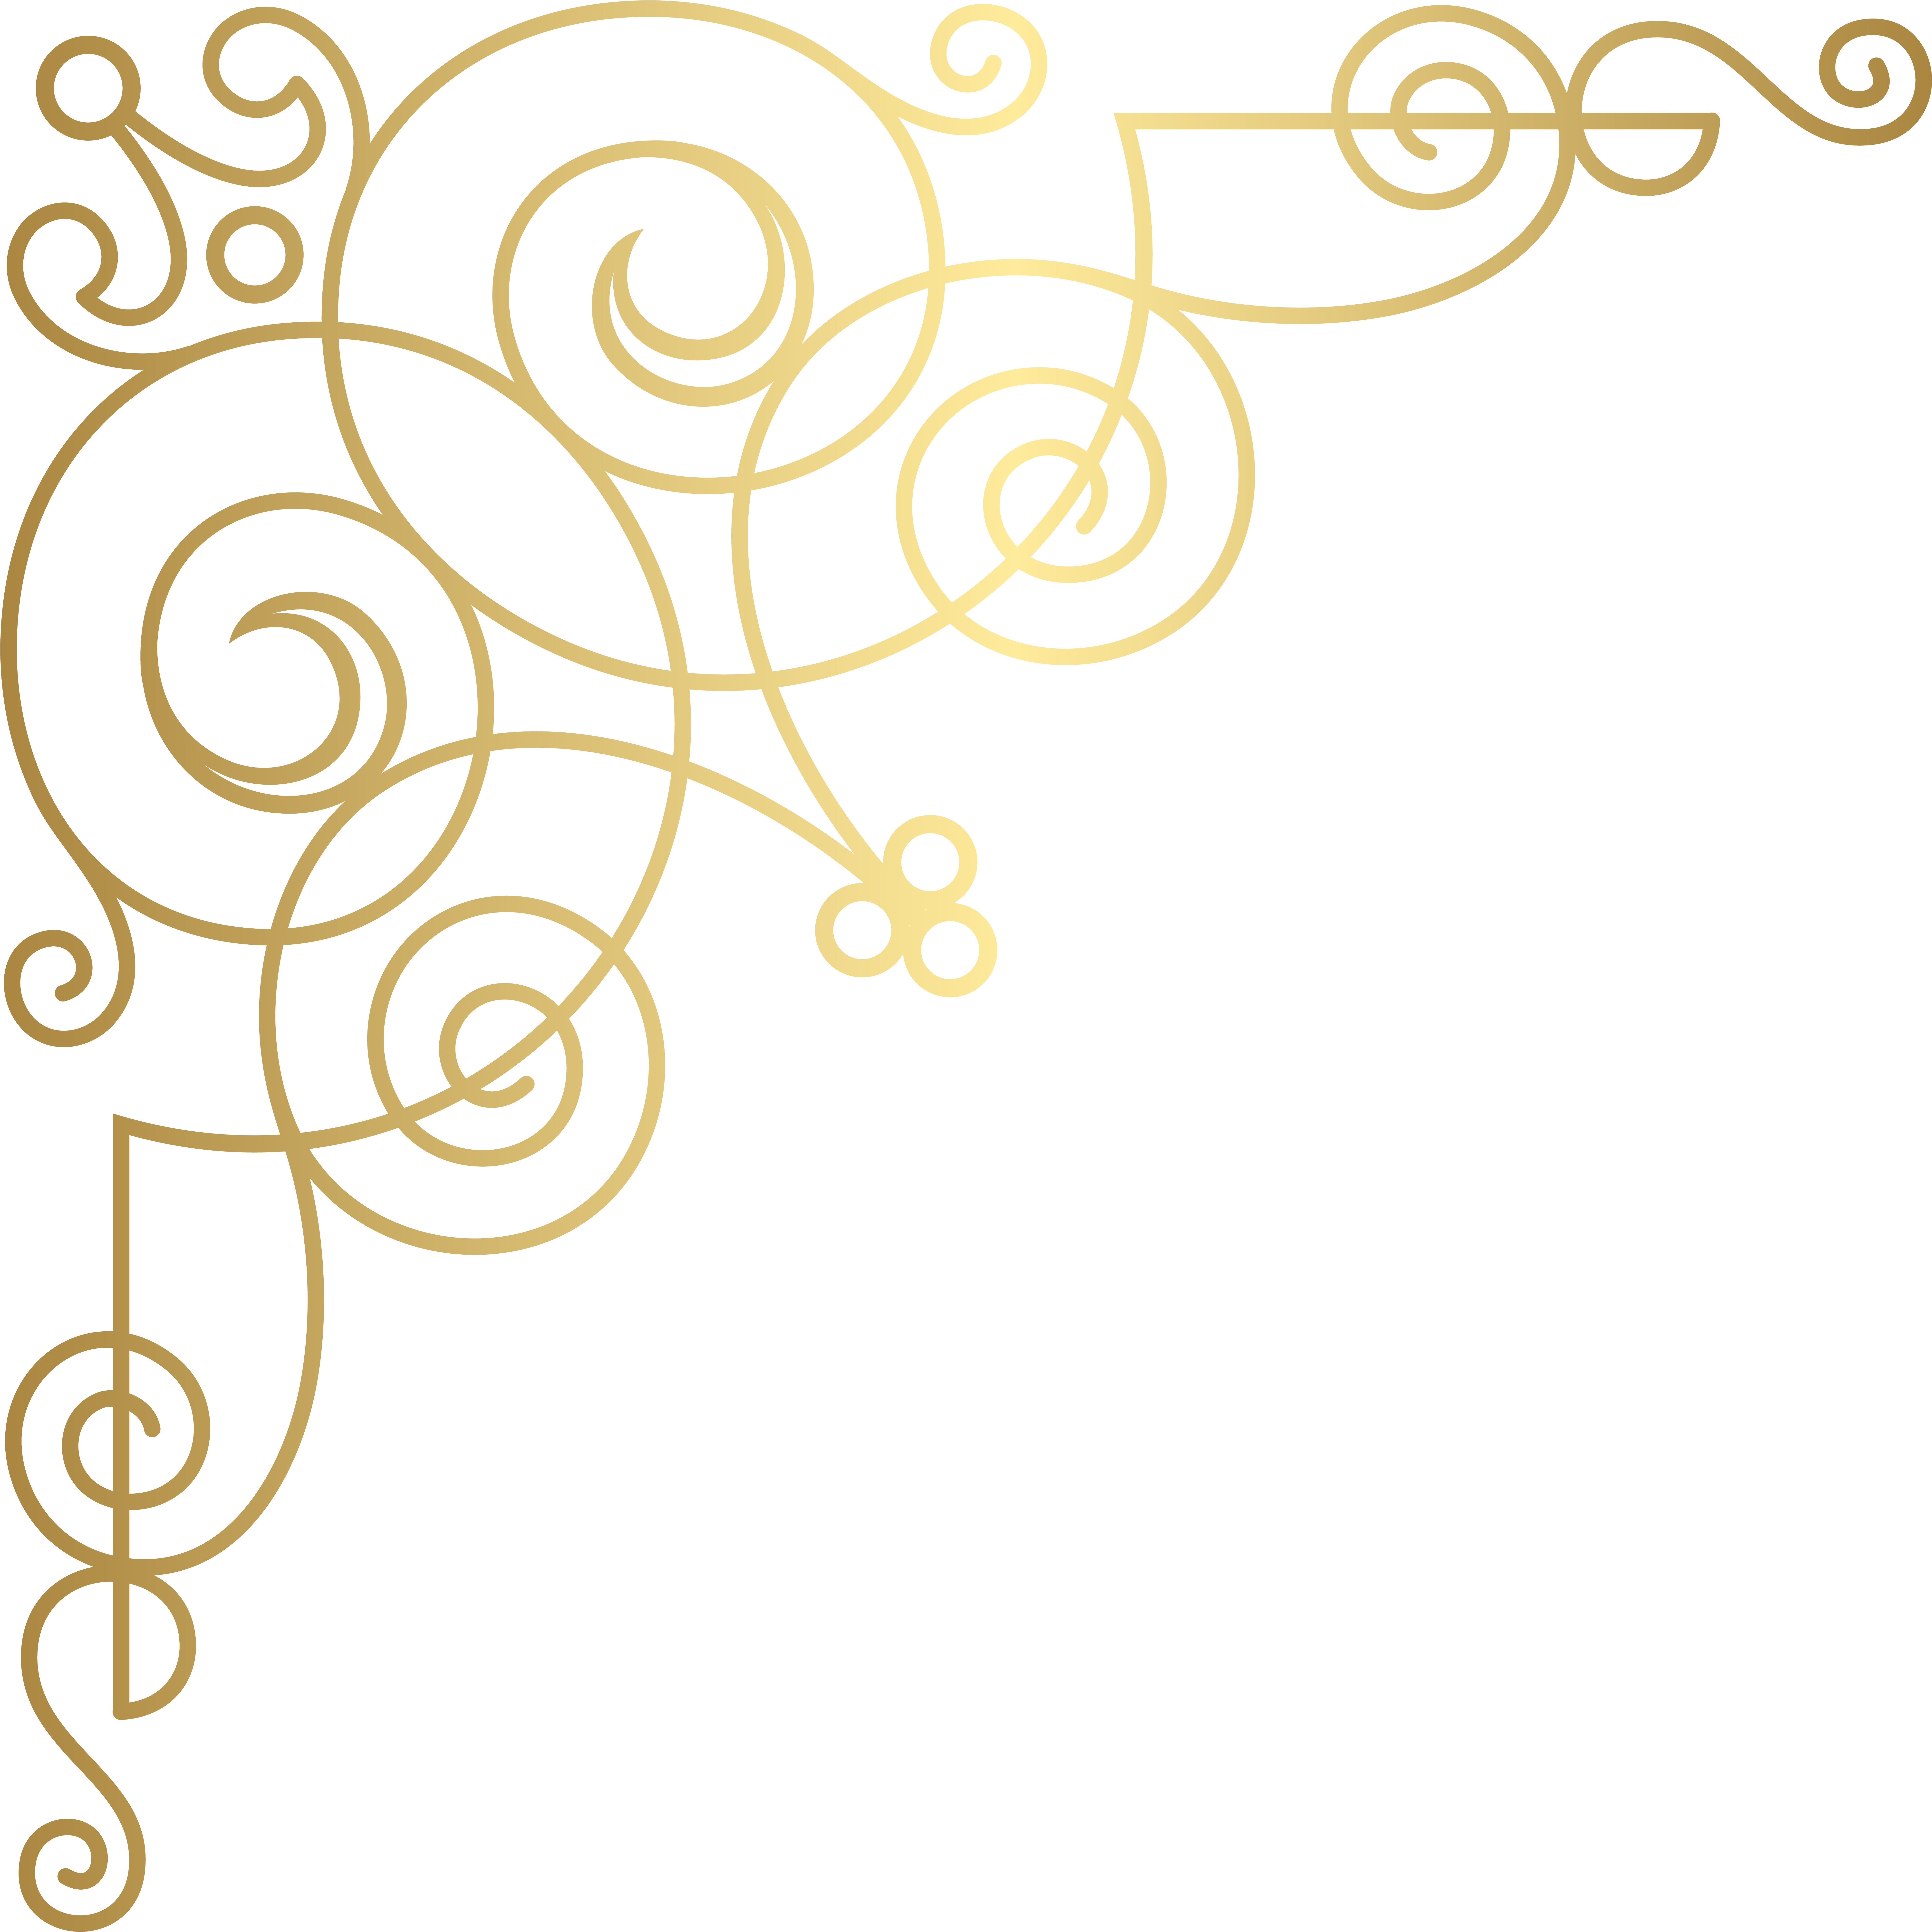 Download png image with. Filigree clipart filigree square